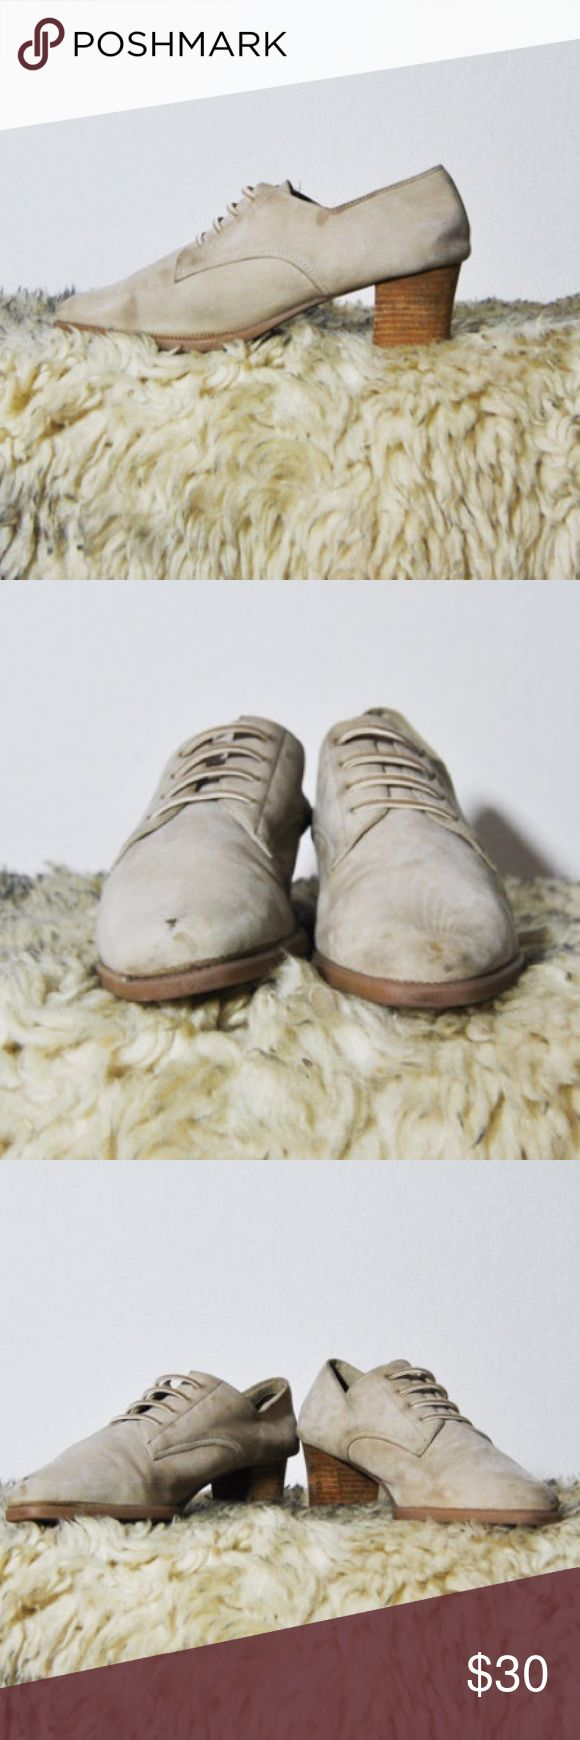 90s Beige Oxfords Good condition - could use a little cleaning.   Found in: San Francsico, CA  Brand: Aerosoles  Tag Size: 10  Fits like a modern: 10  Heel: 2in Vintage Shoes Heeled Boots